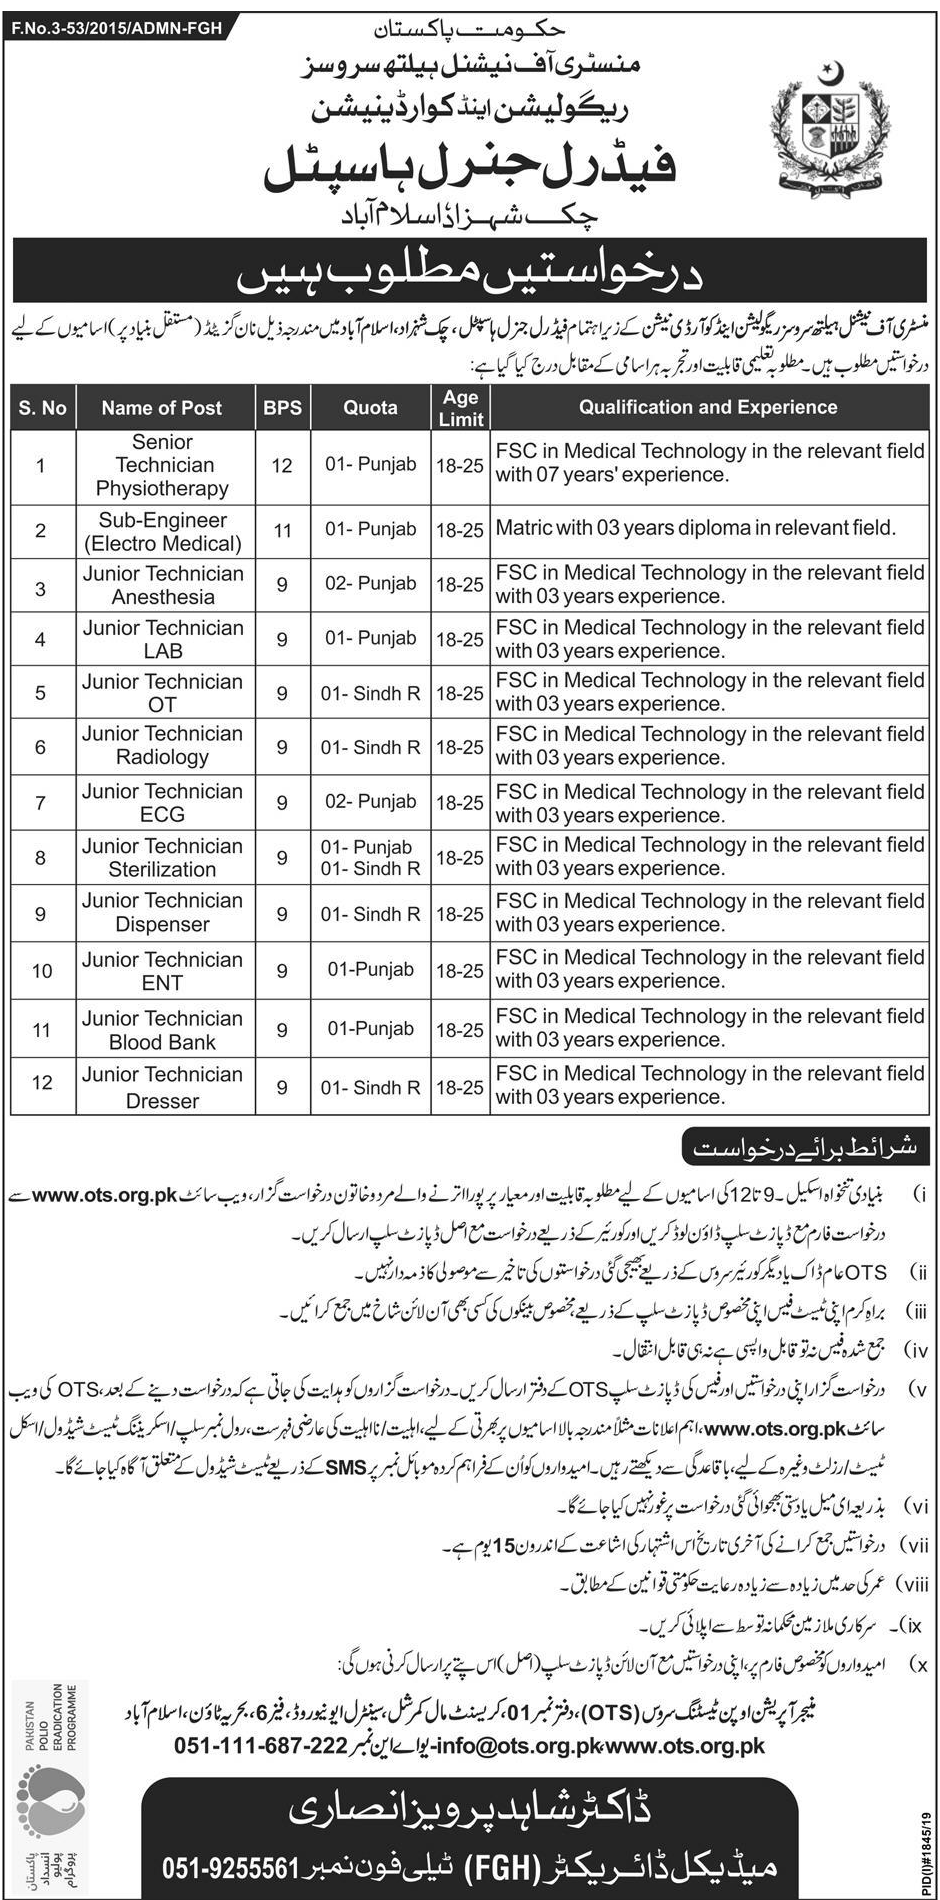 Chak Shahzad Federal General Hospital Islamabad Jobs Via OTS